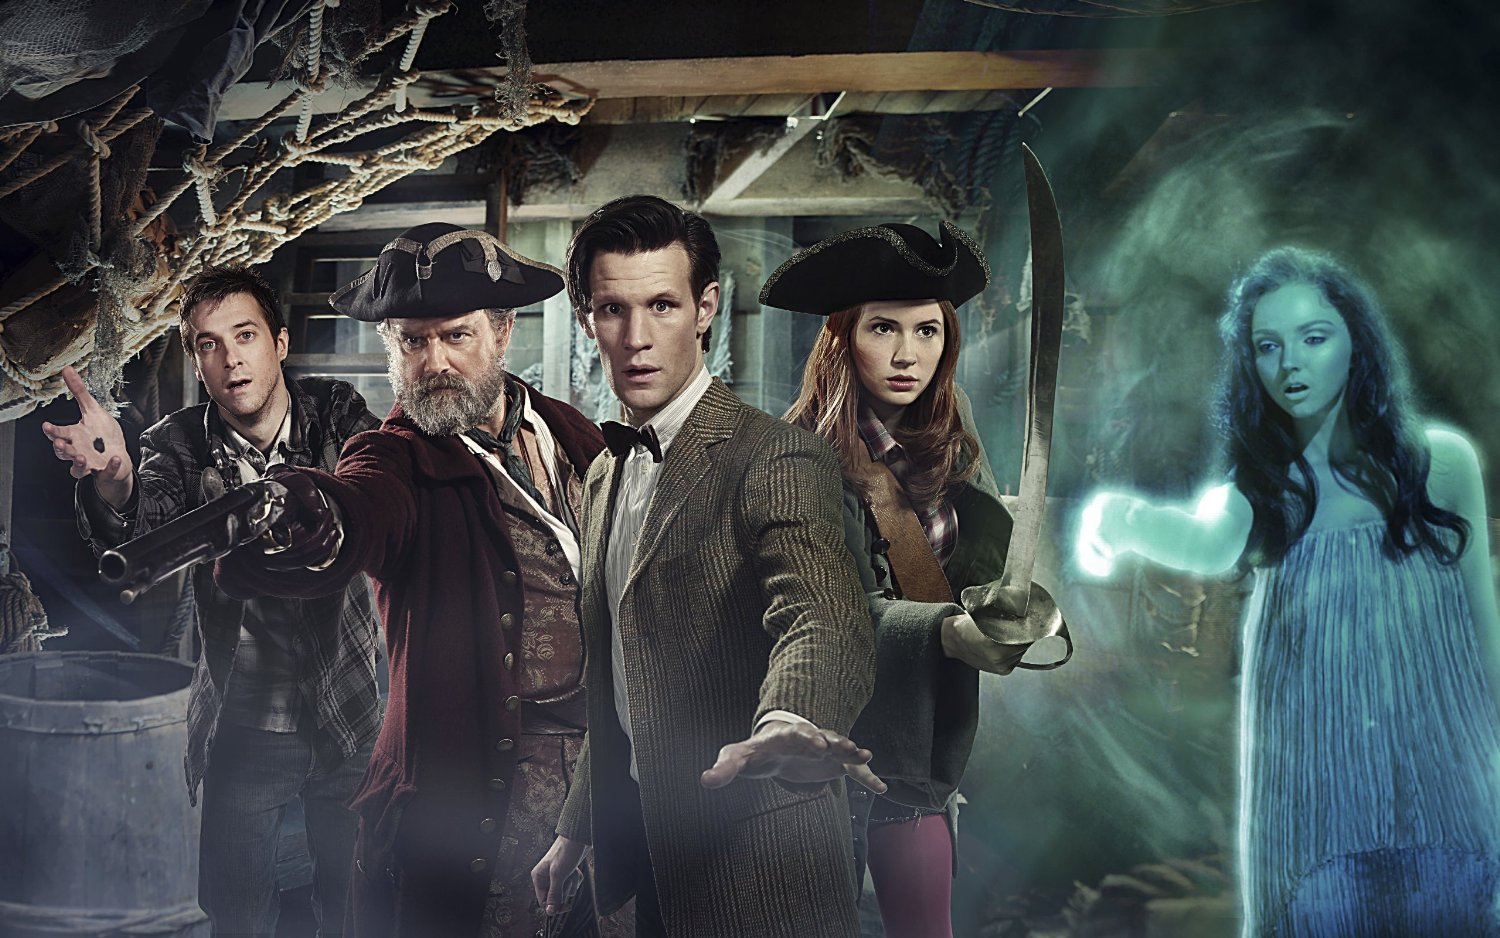 Doctor Who - Piratenschiff - Sirene